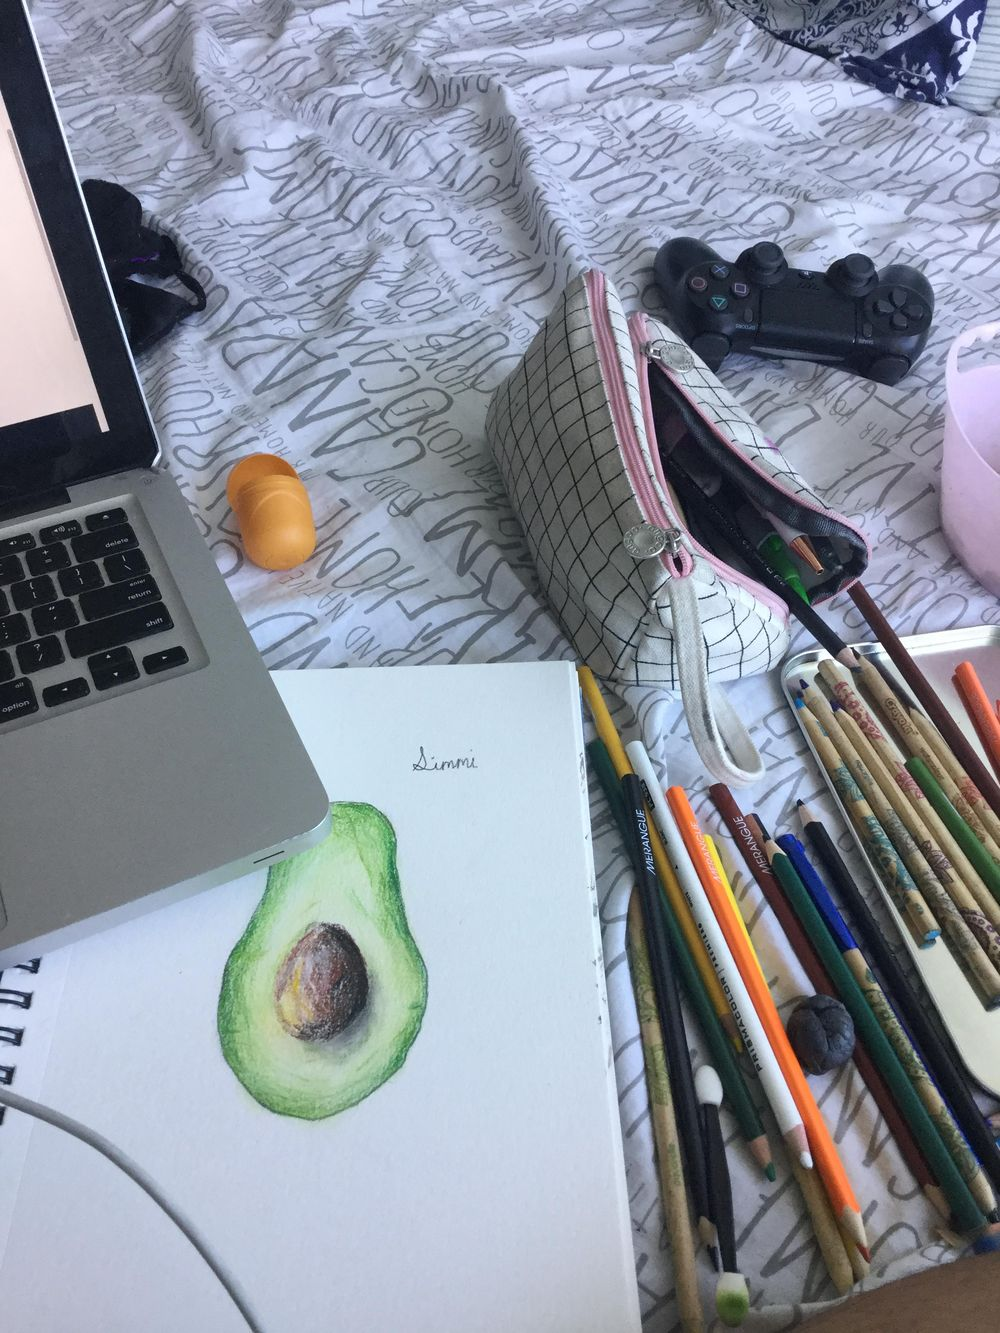 Avocado - image 1 - student project